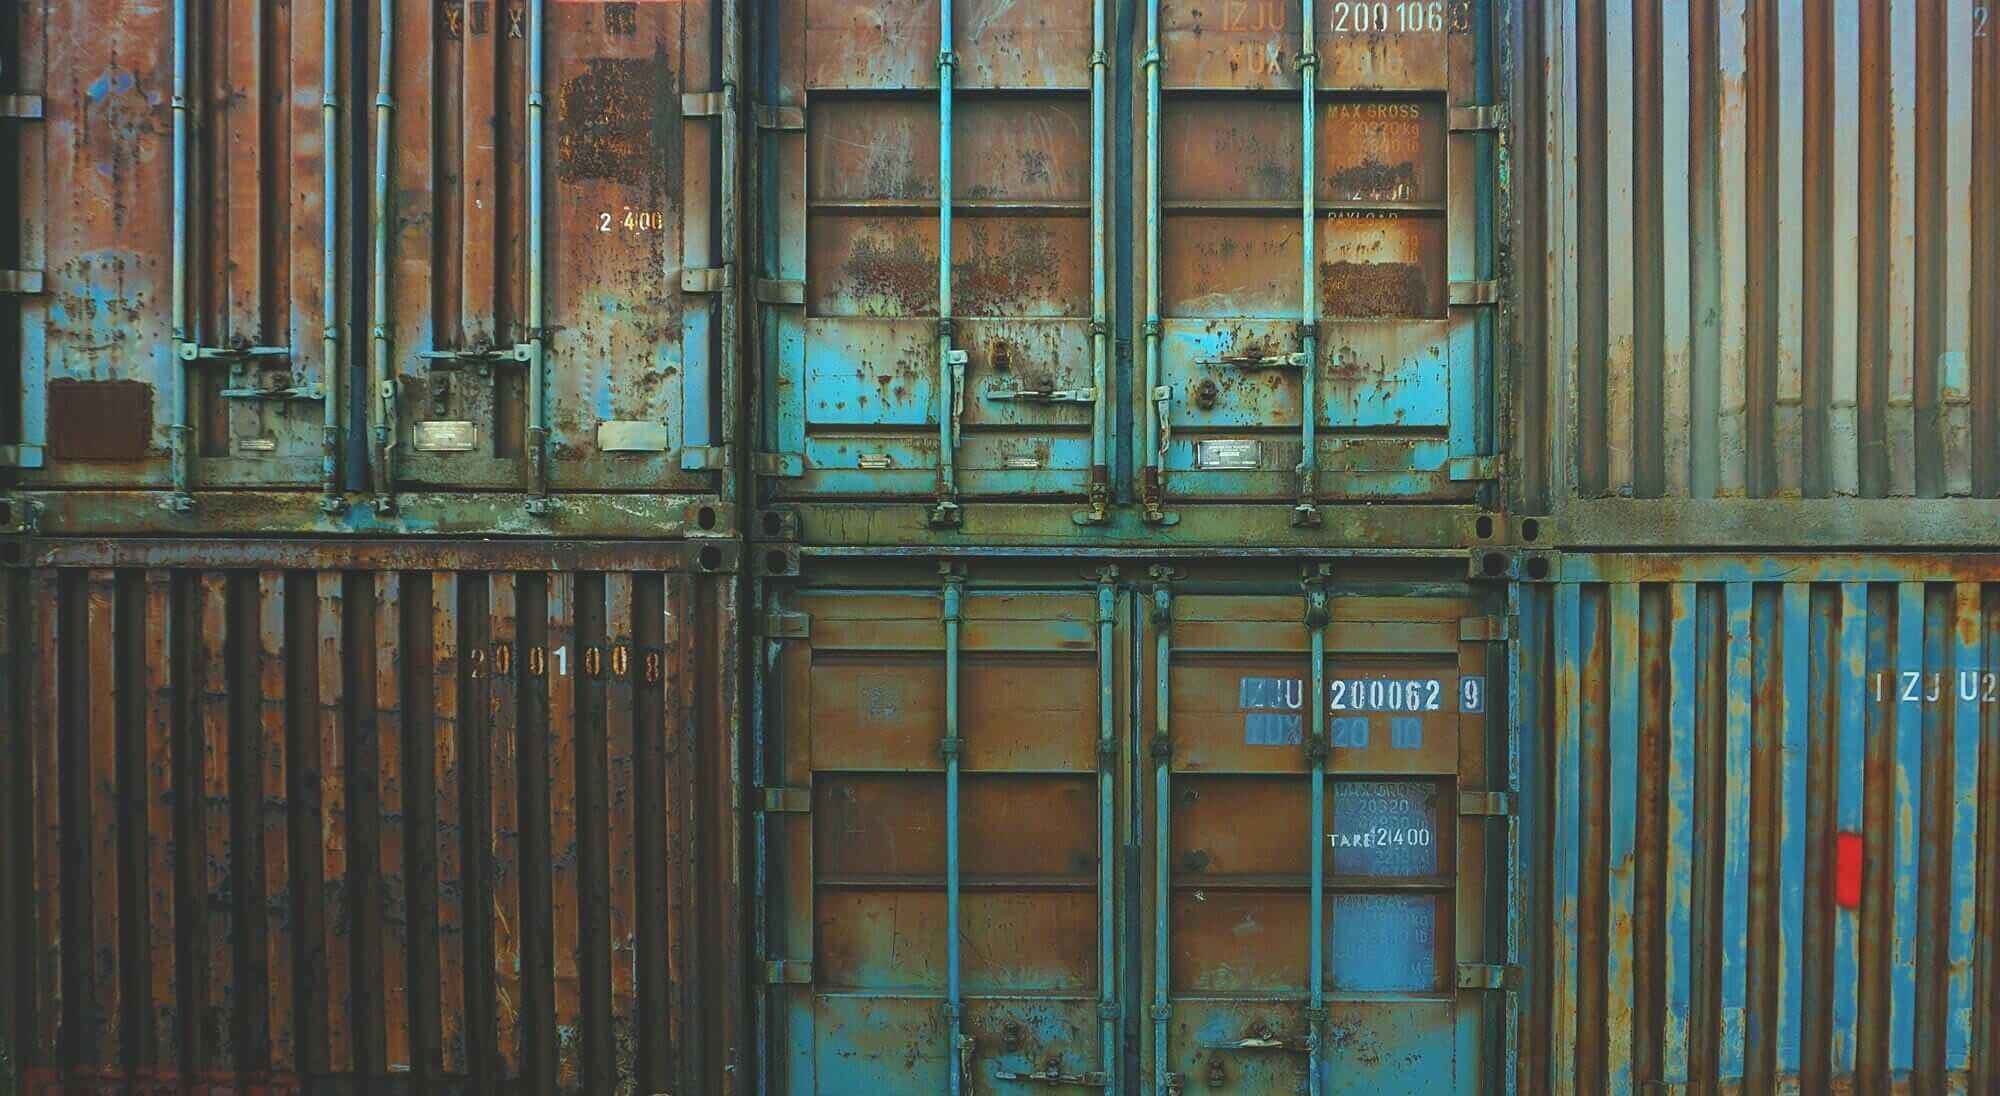 Shipping containers at a Panama Canal port